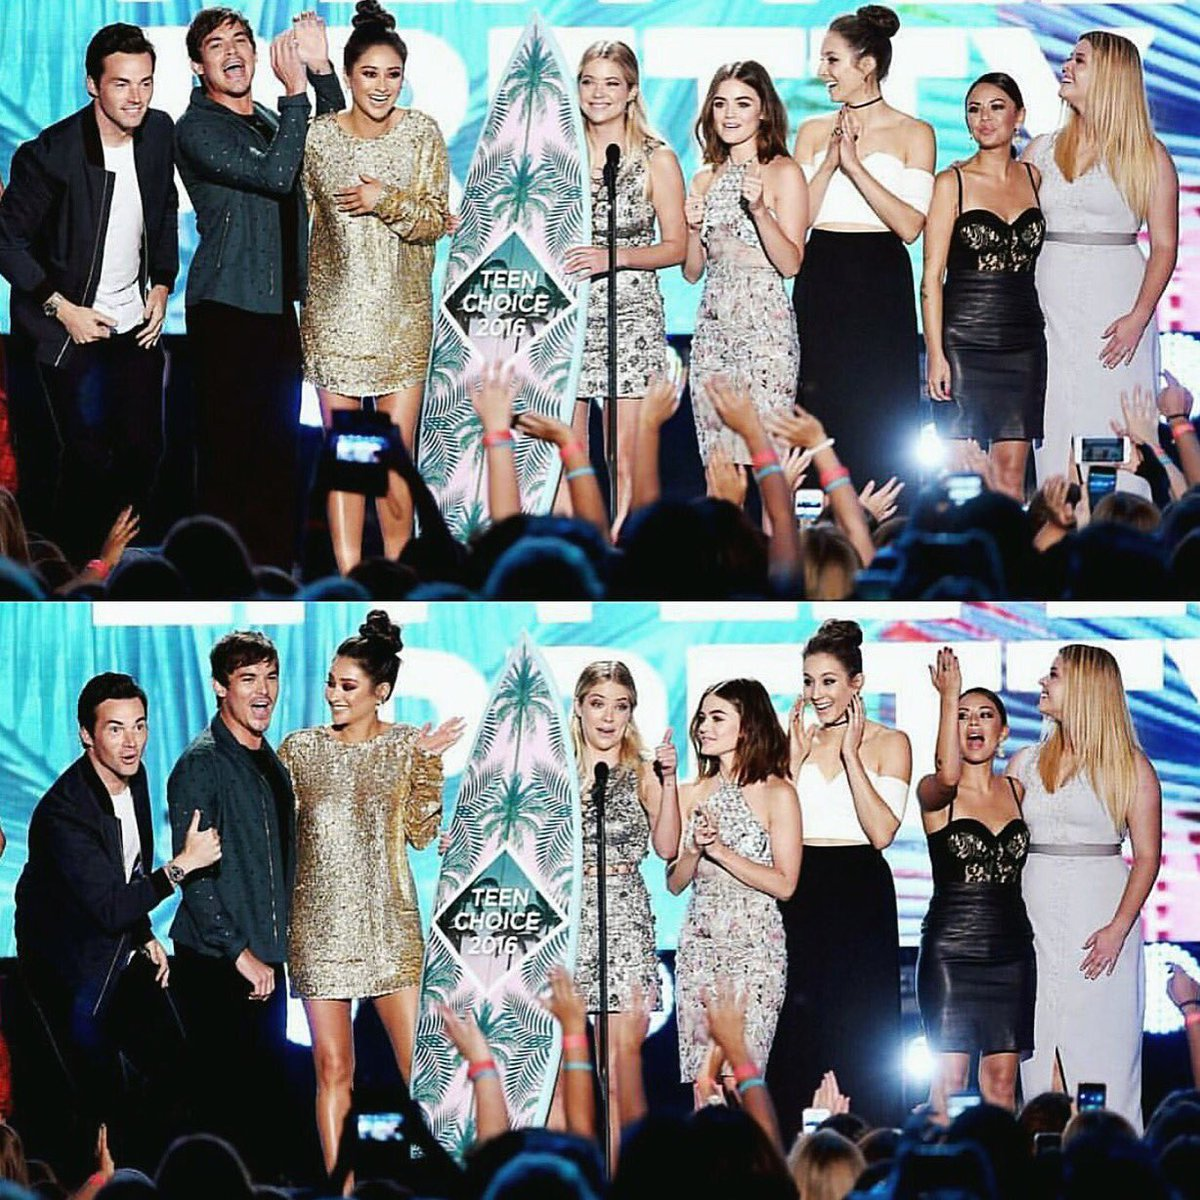 Thank you to EVERY SINGLE ONE OF YOU who voted...#PLL fans are the LOUDEST. ❤️✌☮ @TeenChoiceFOX @PLLTVSeries https://t.co/kueTfGBxfv